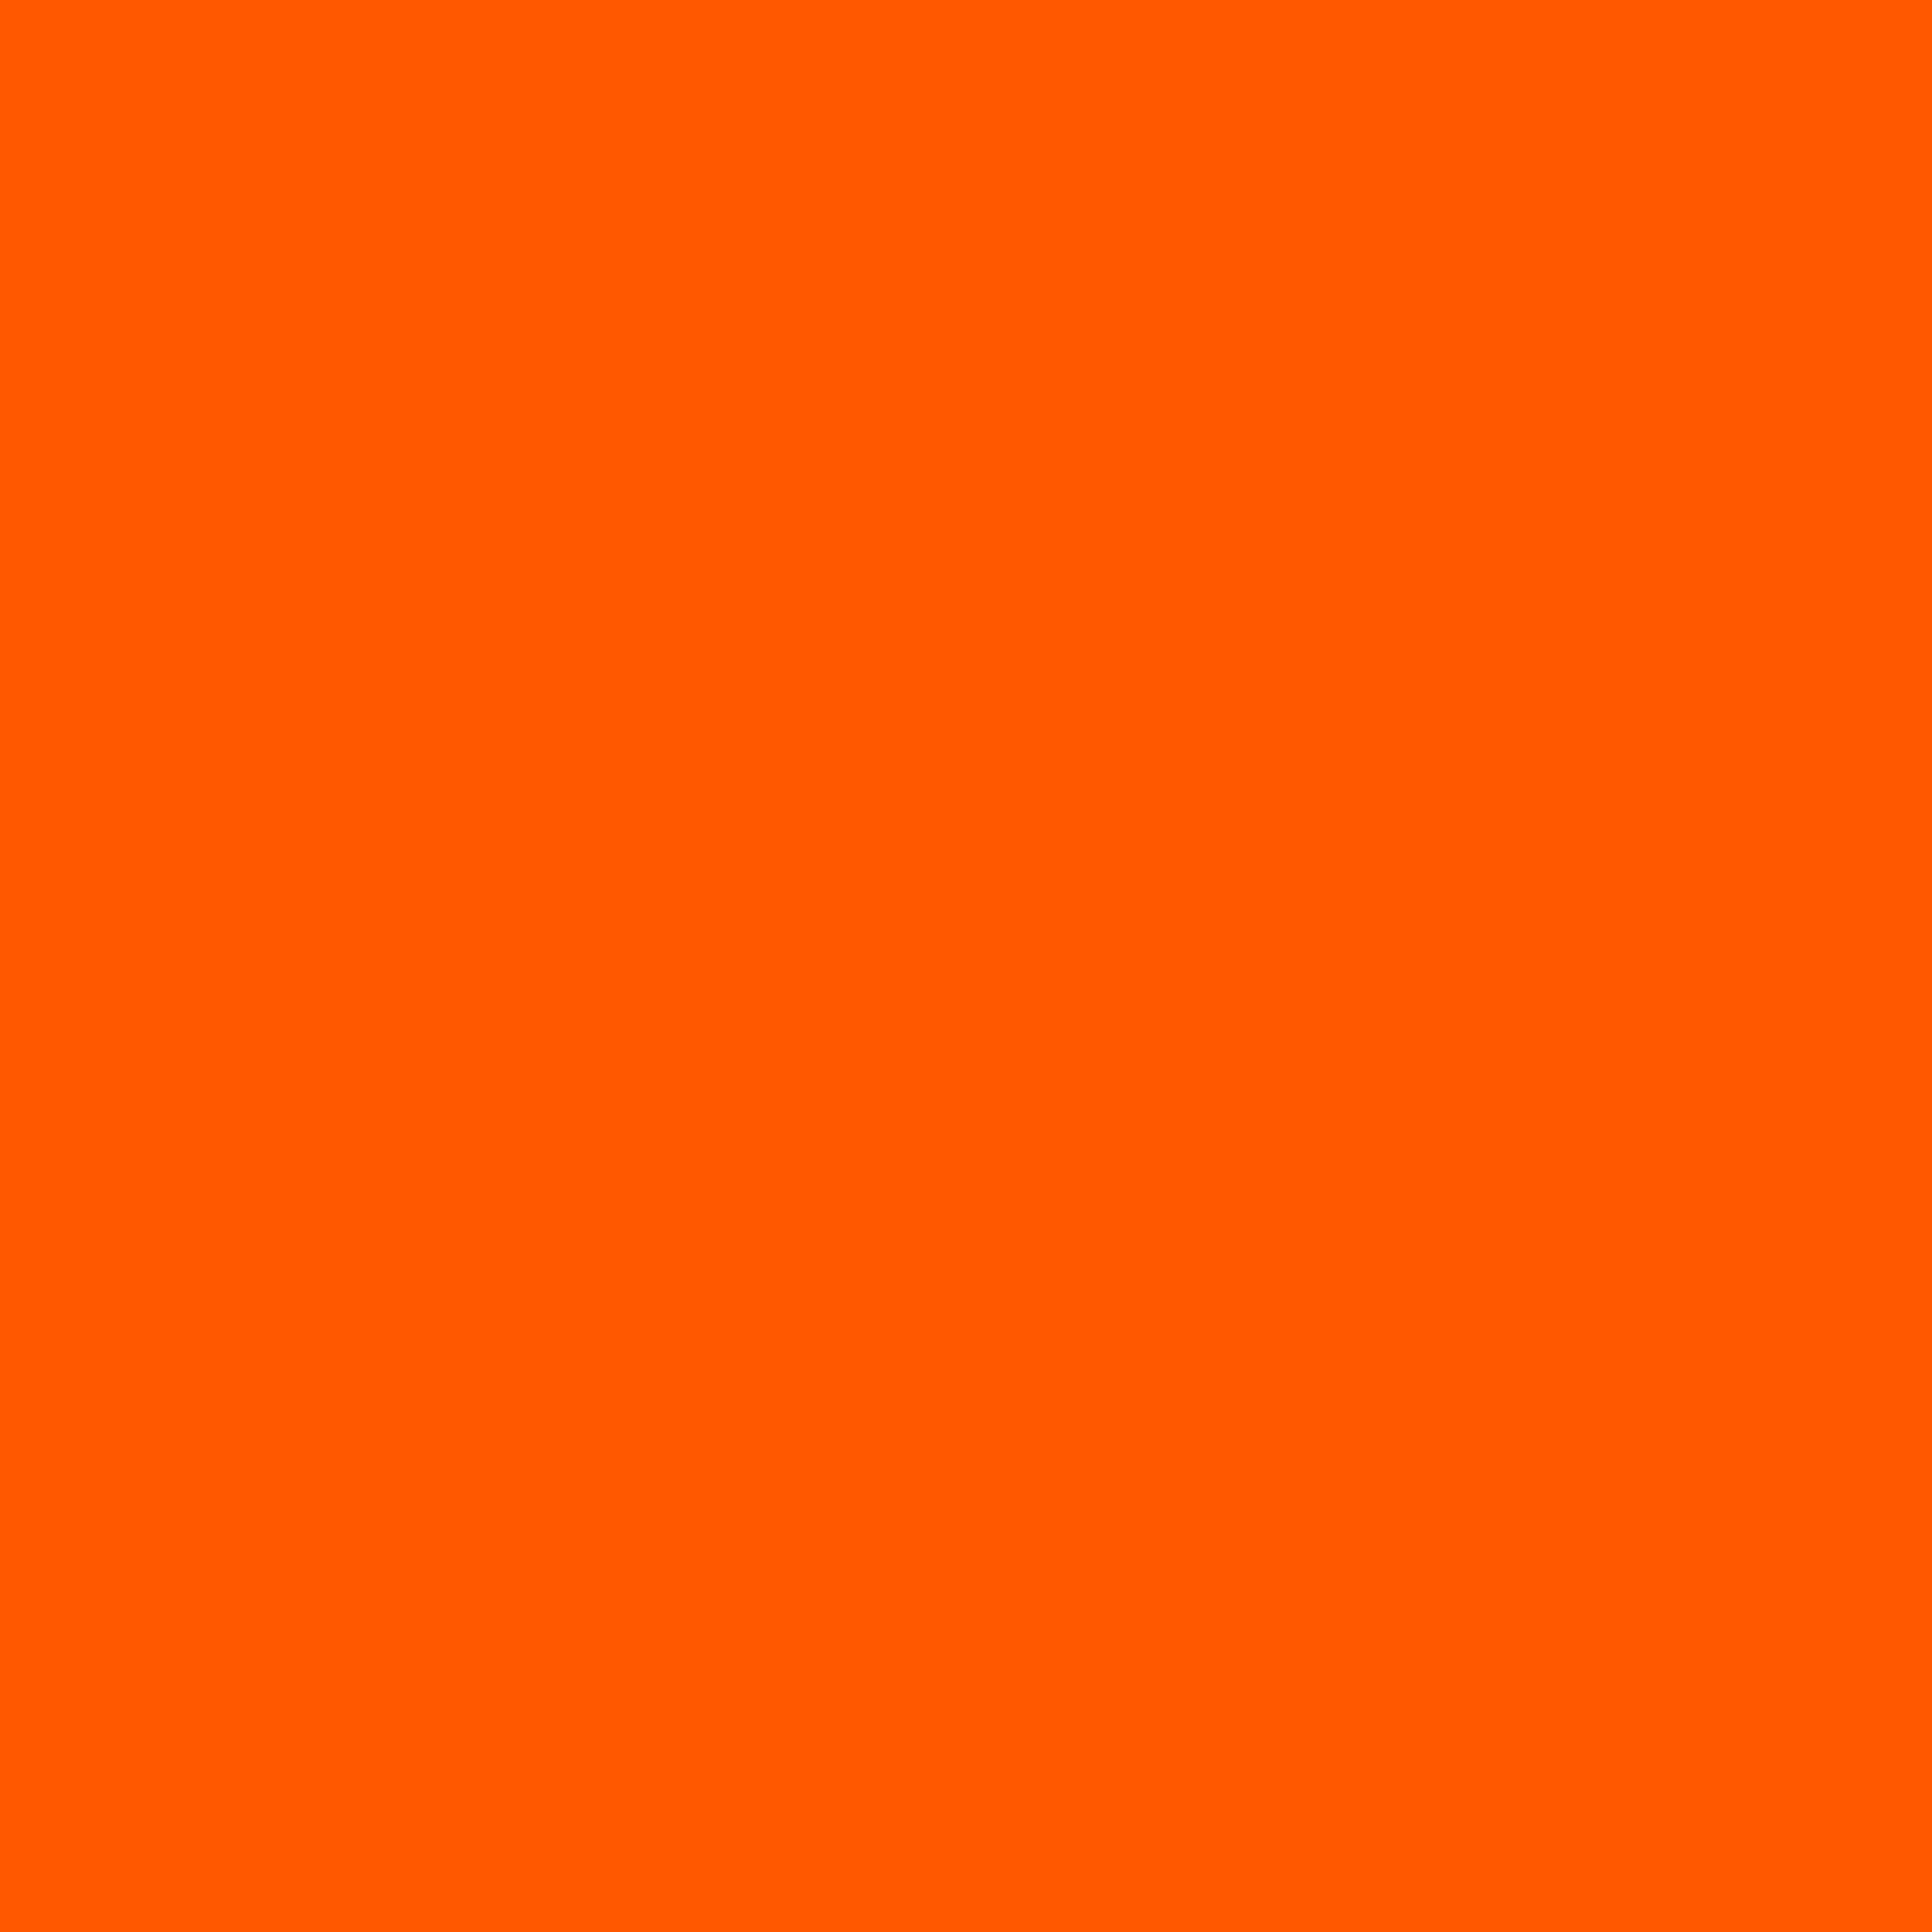 2048x2048 Orange Pantone Solid Color Background